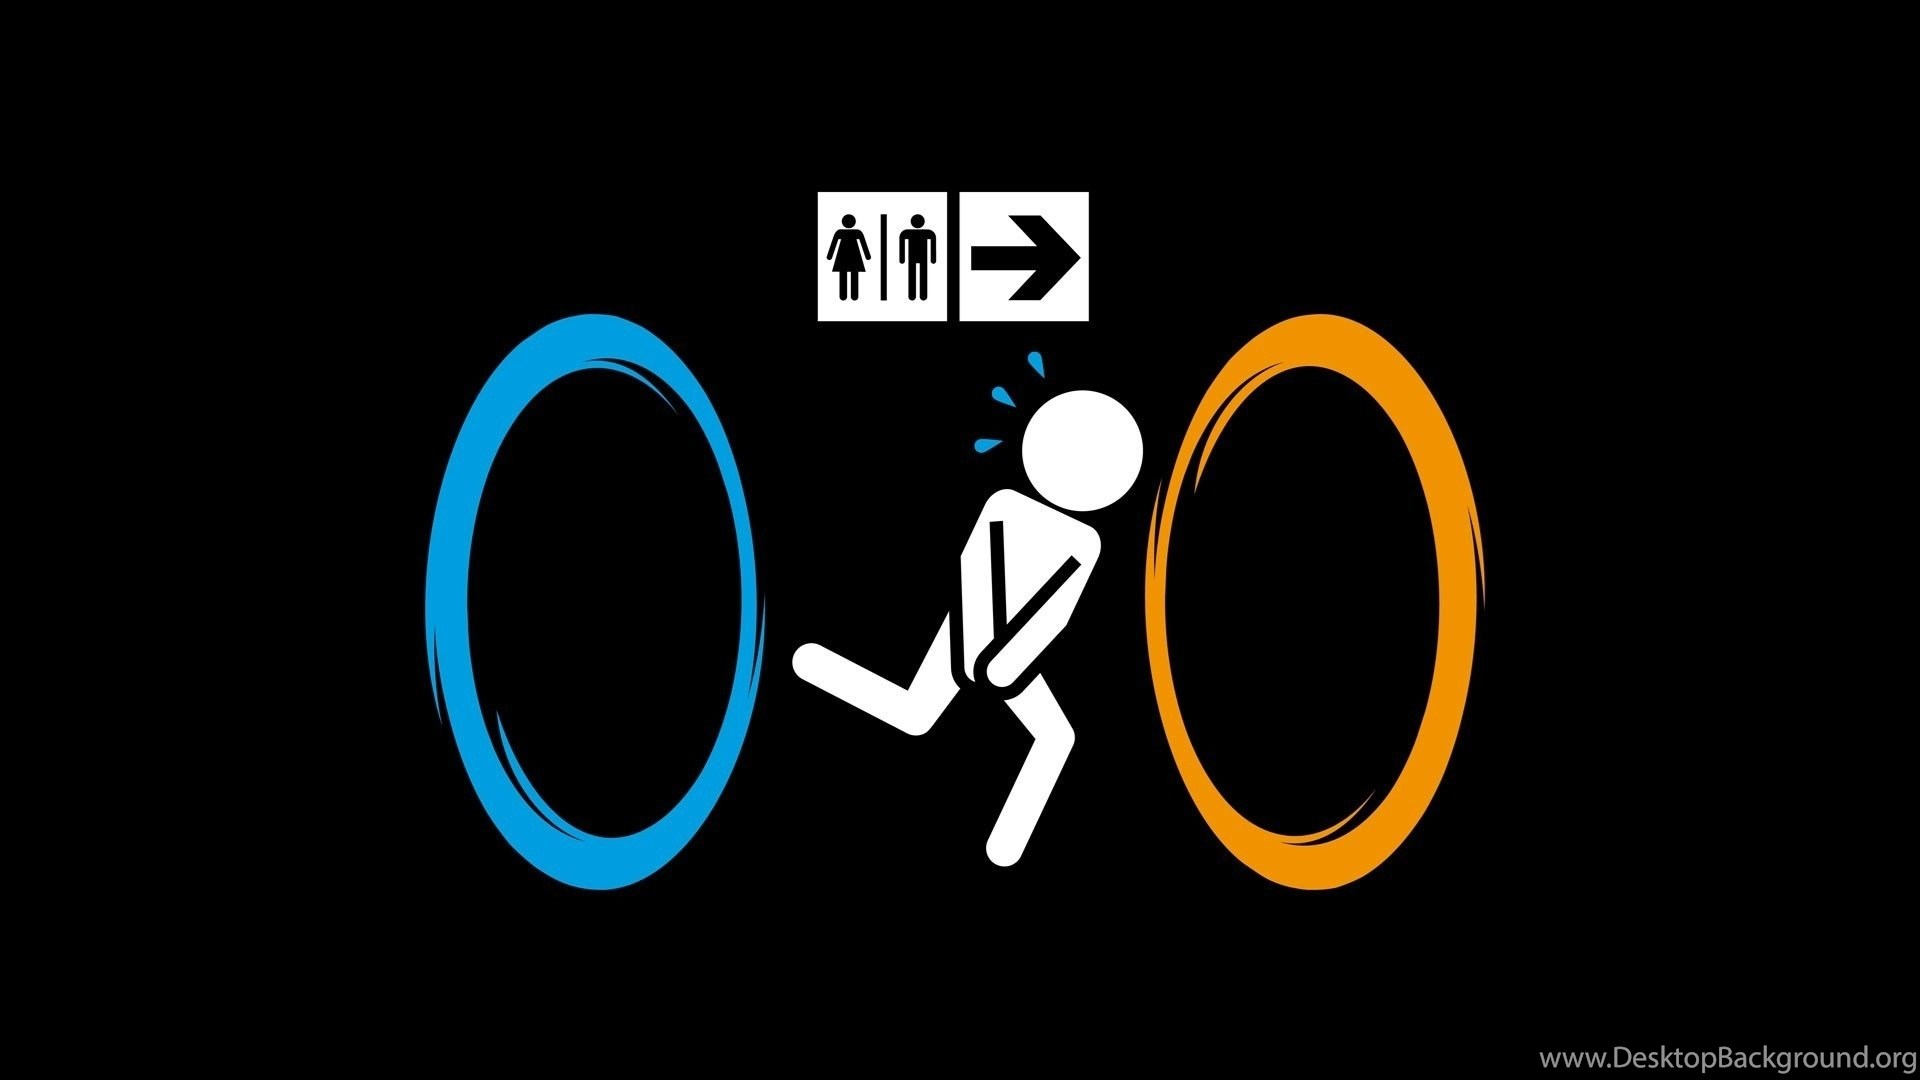 Portal Funny Wallpapers 9876 Games Hd Wallpapers Full Hd 1080p